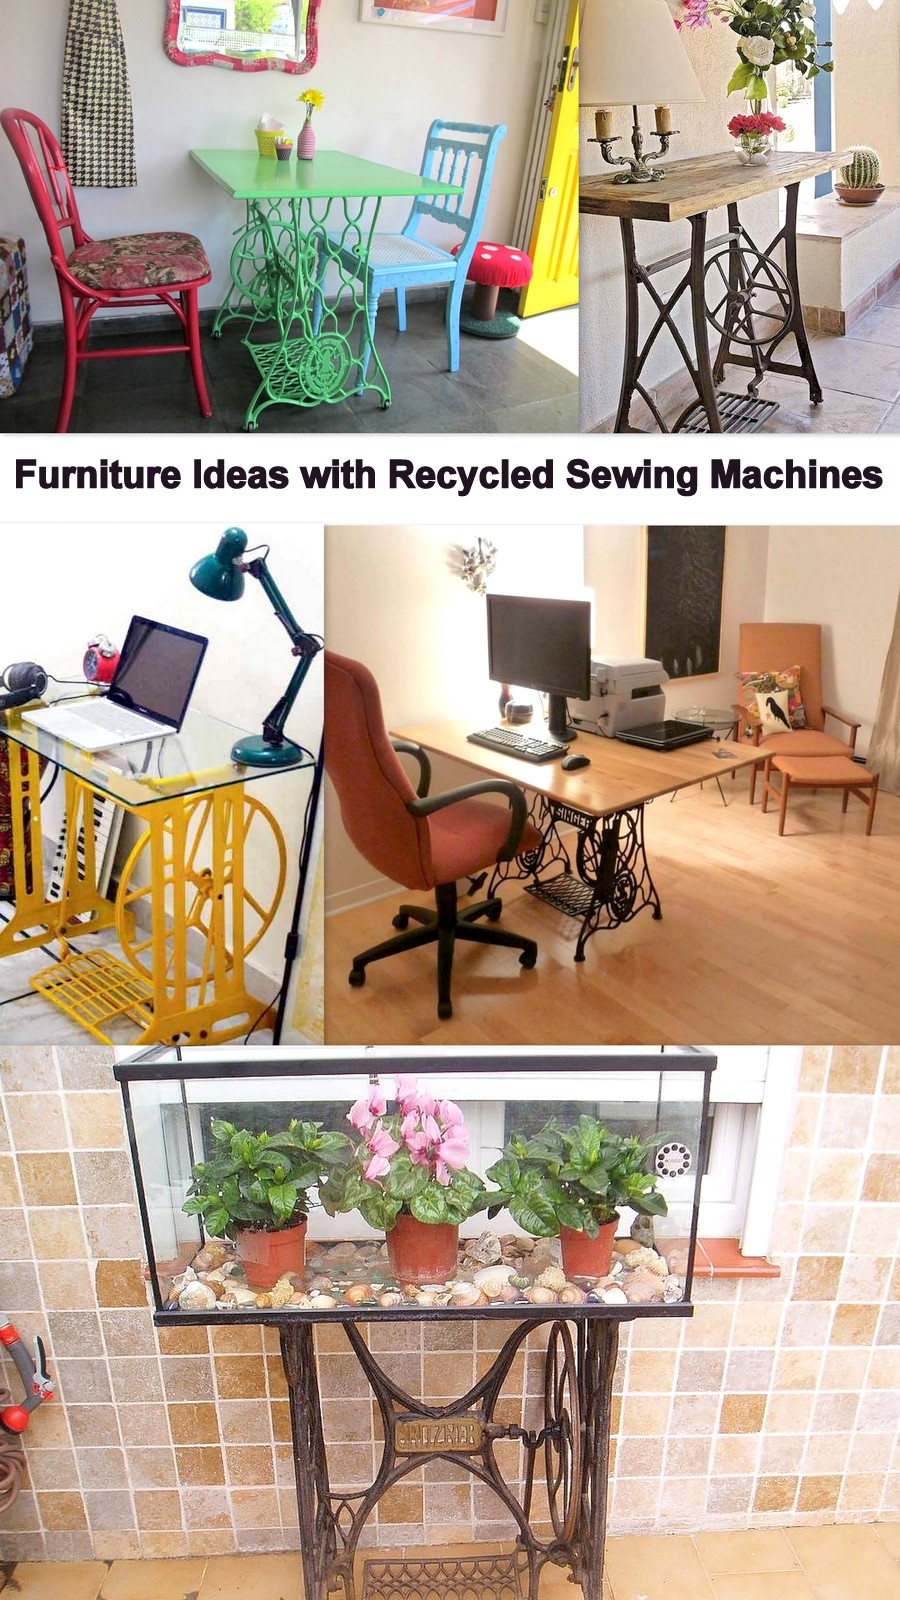 Furniture Ideas with Recycled Sewing Machines